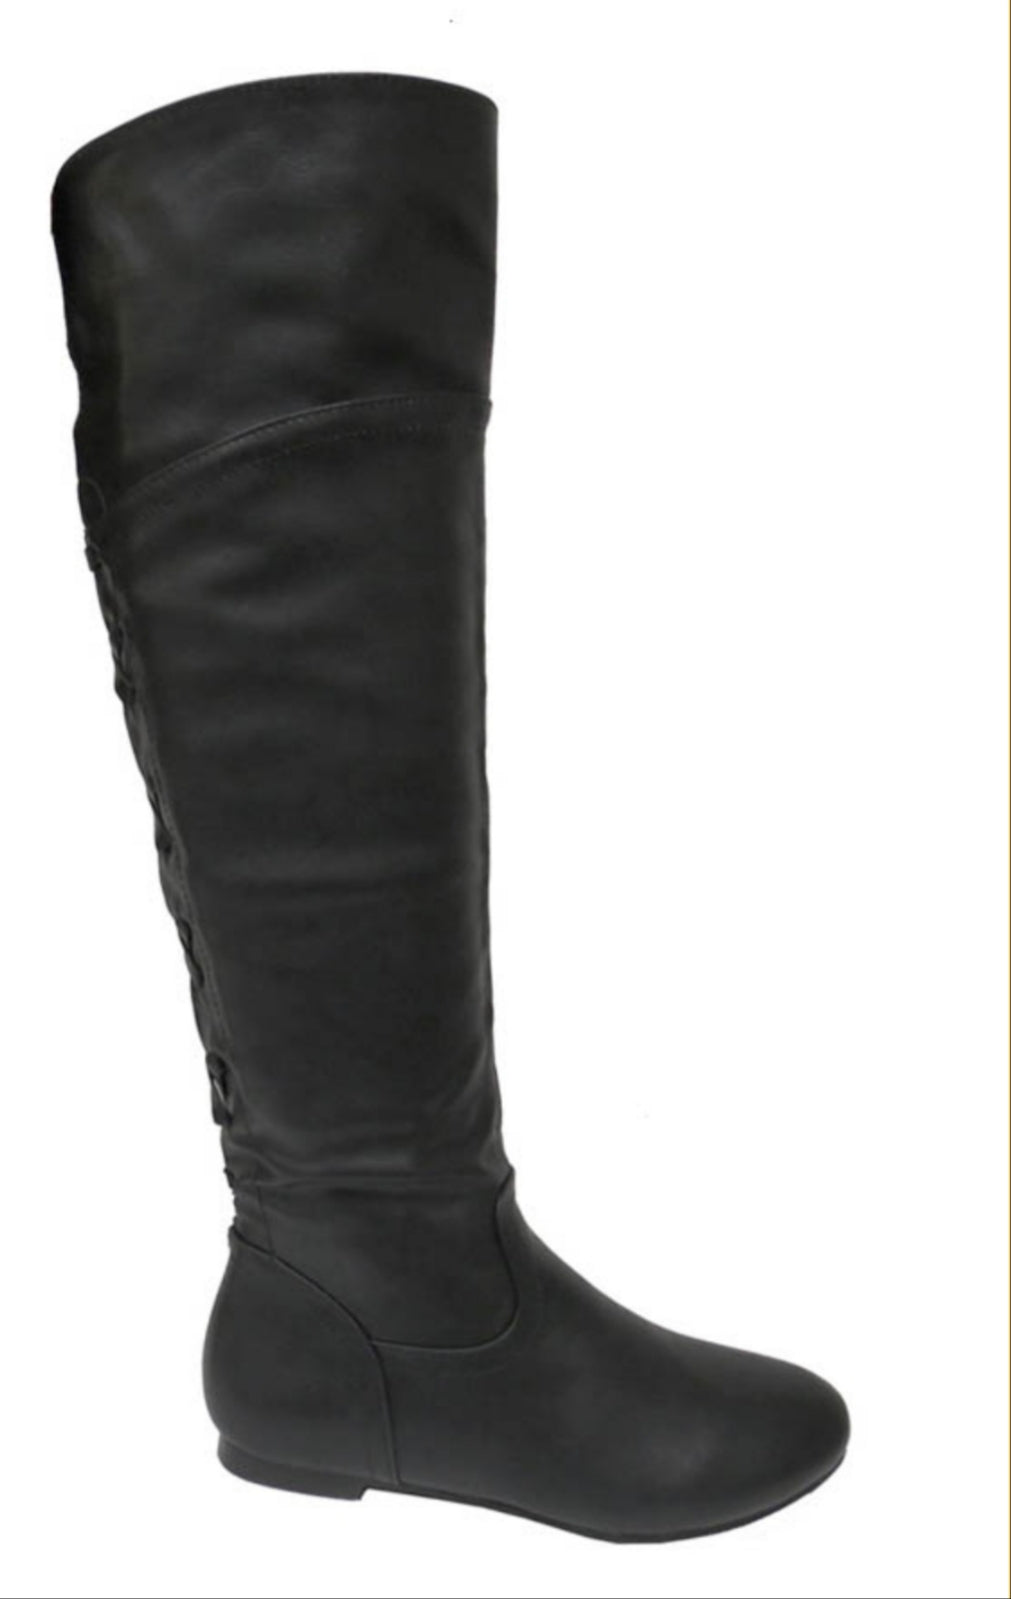 Low Block Heel Knee High Boots - Lookeble